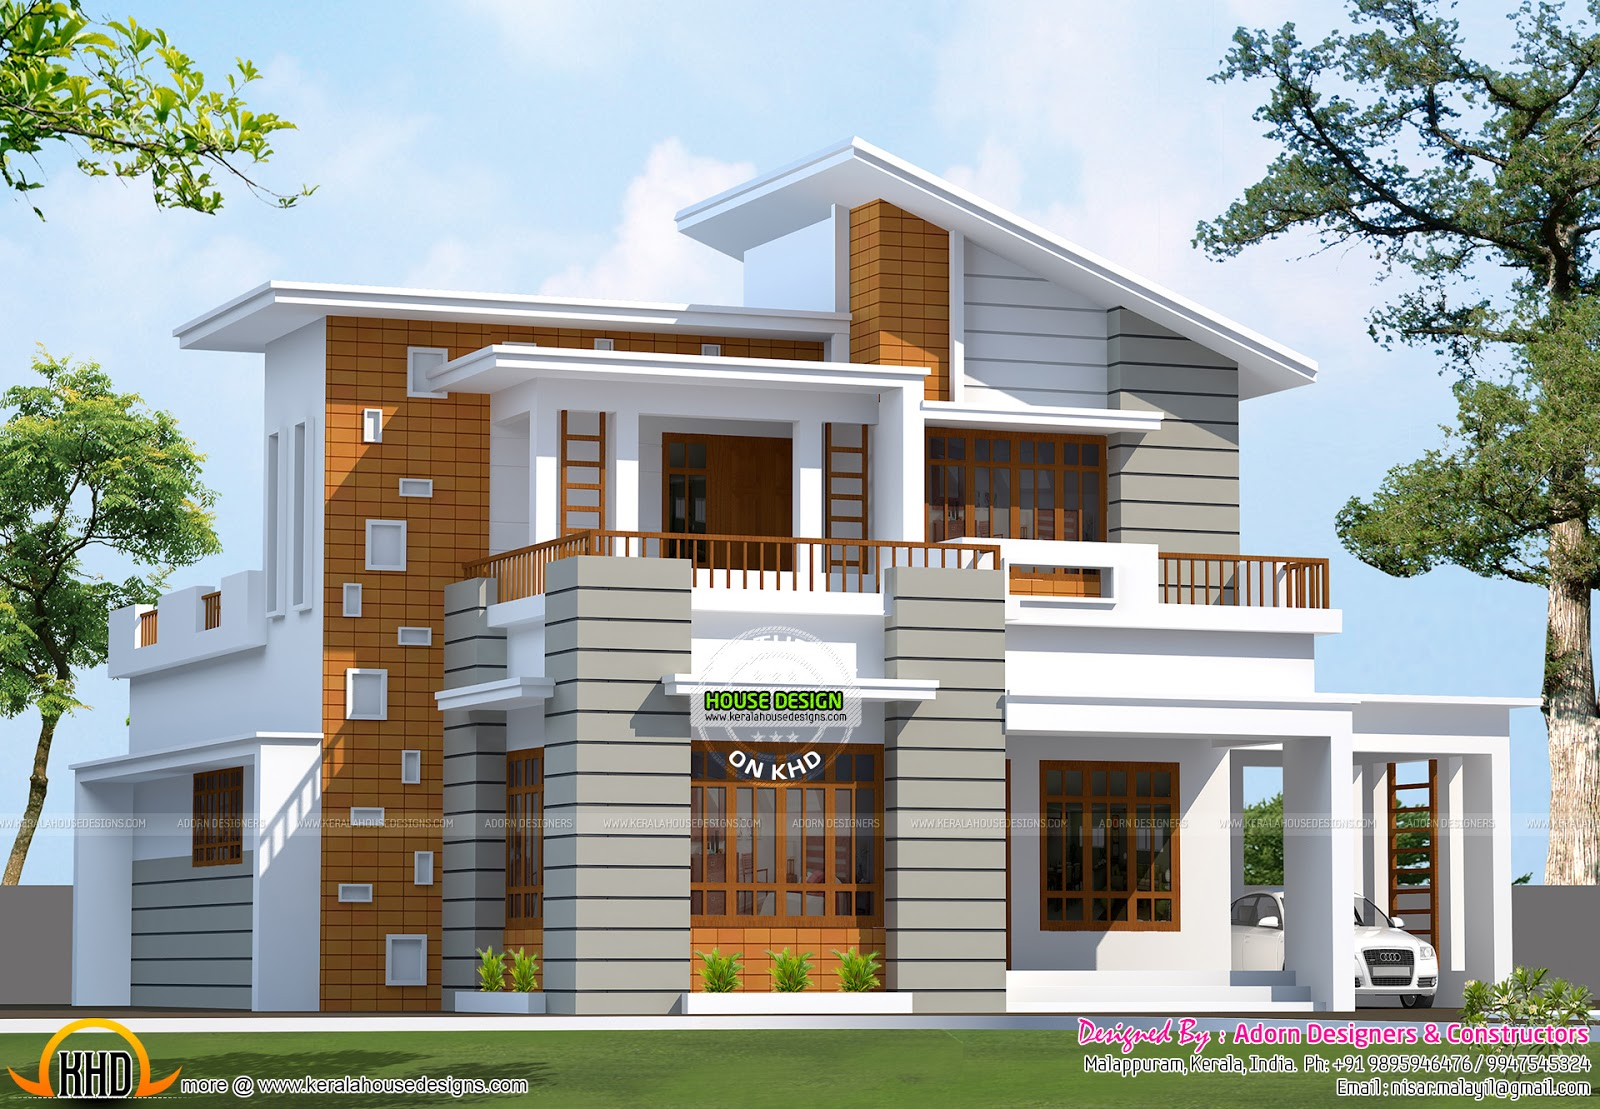 Indian house outlook design modern house for House design images